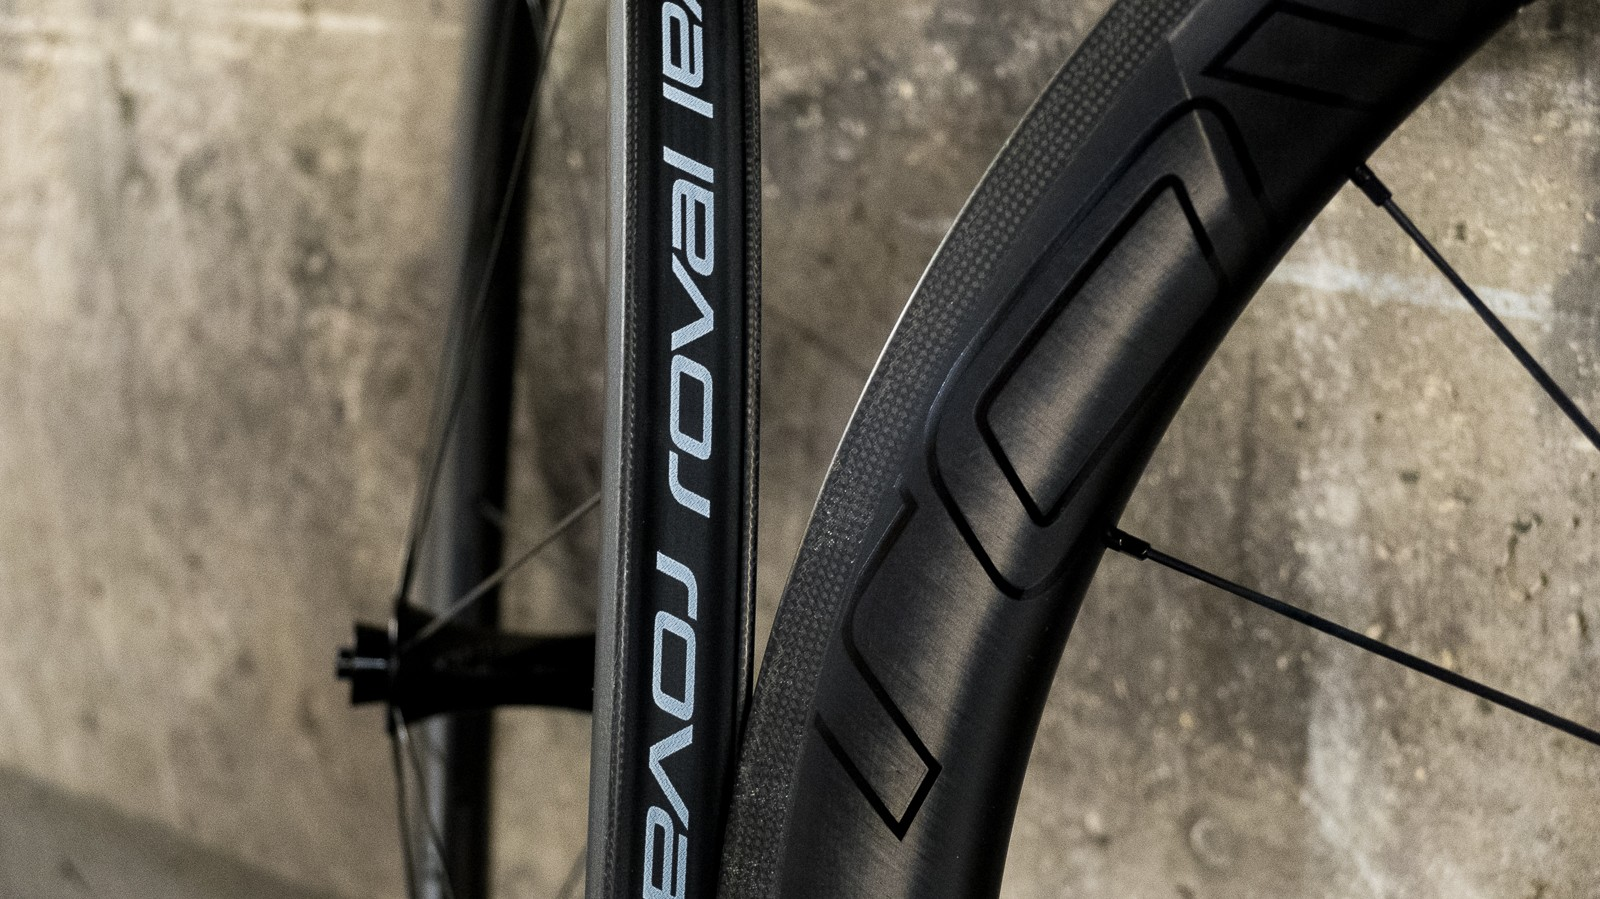 The 20.7mm internal width of these rims wouldn't have been unusual on a mountain bike a few years back. How times change